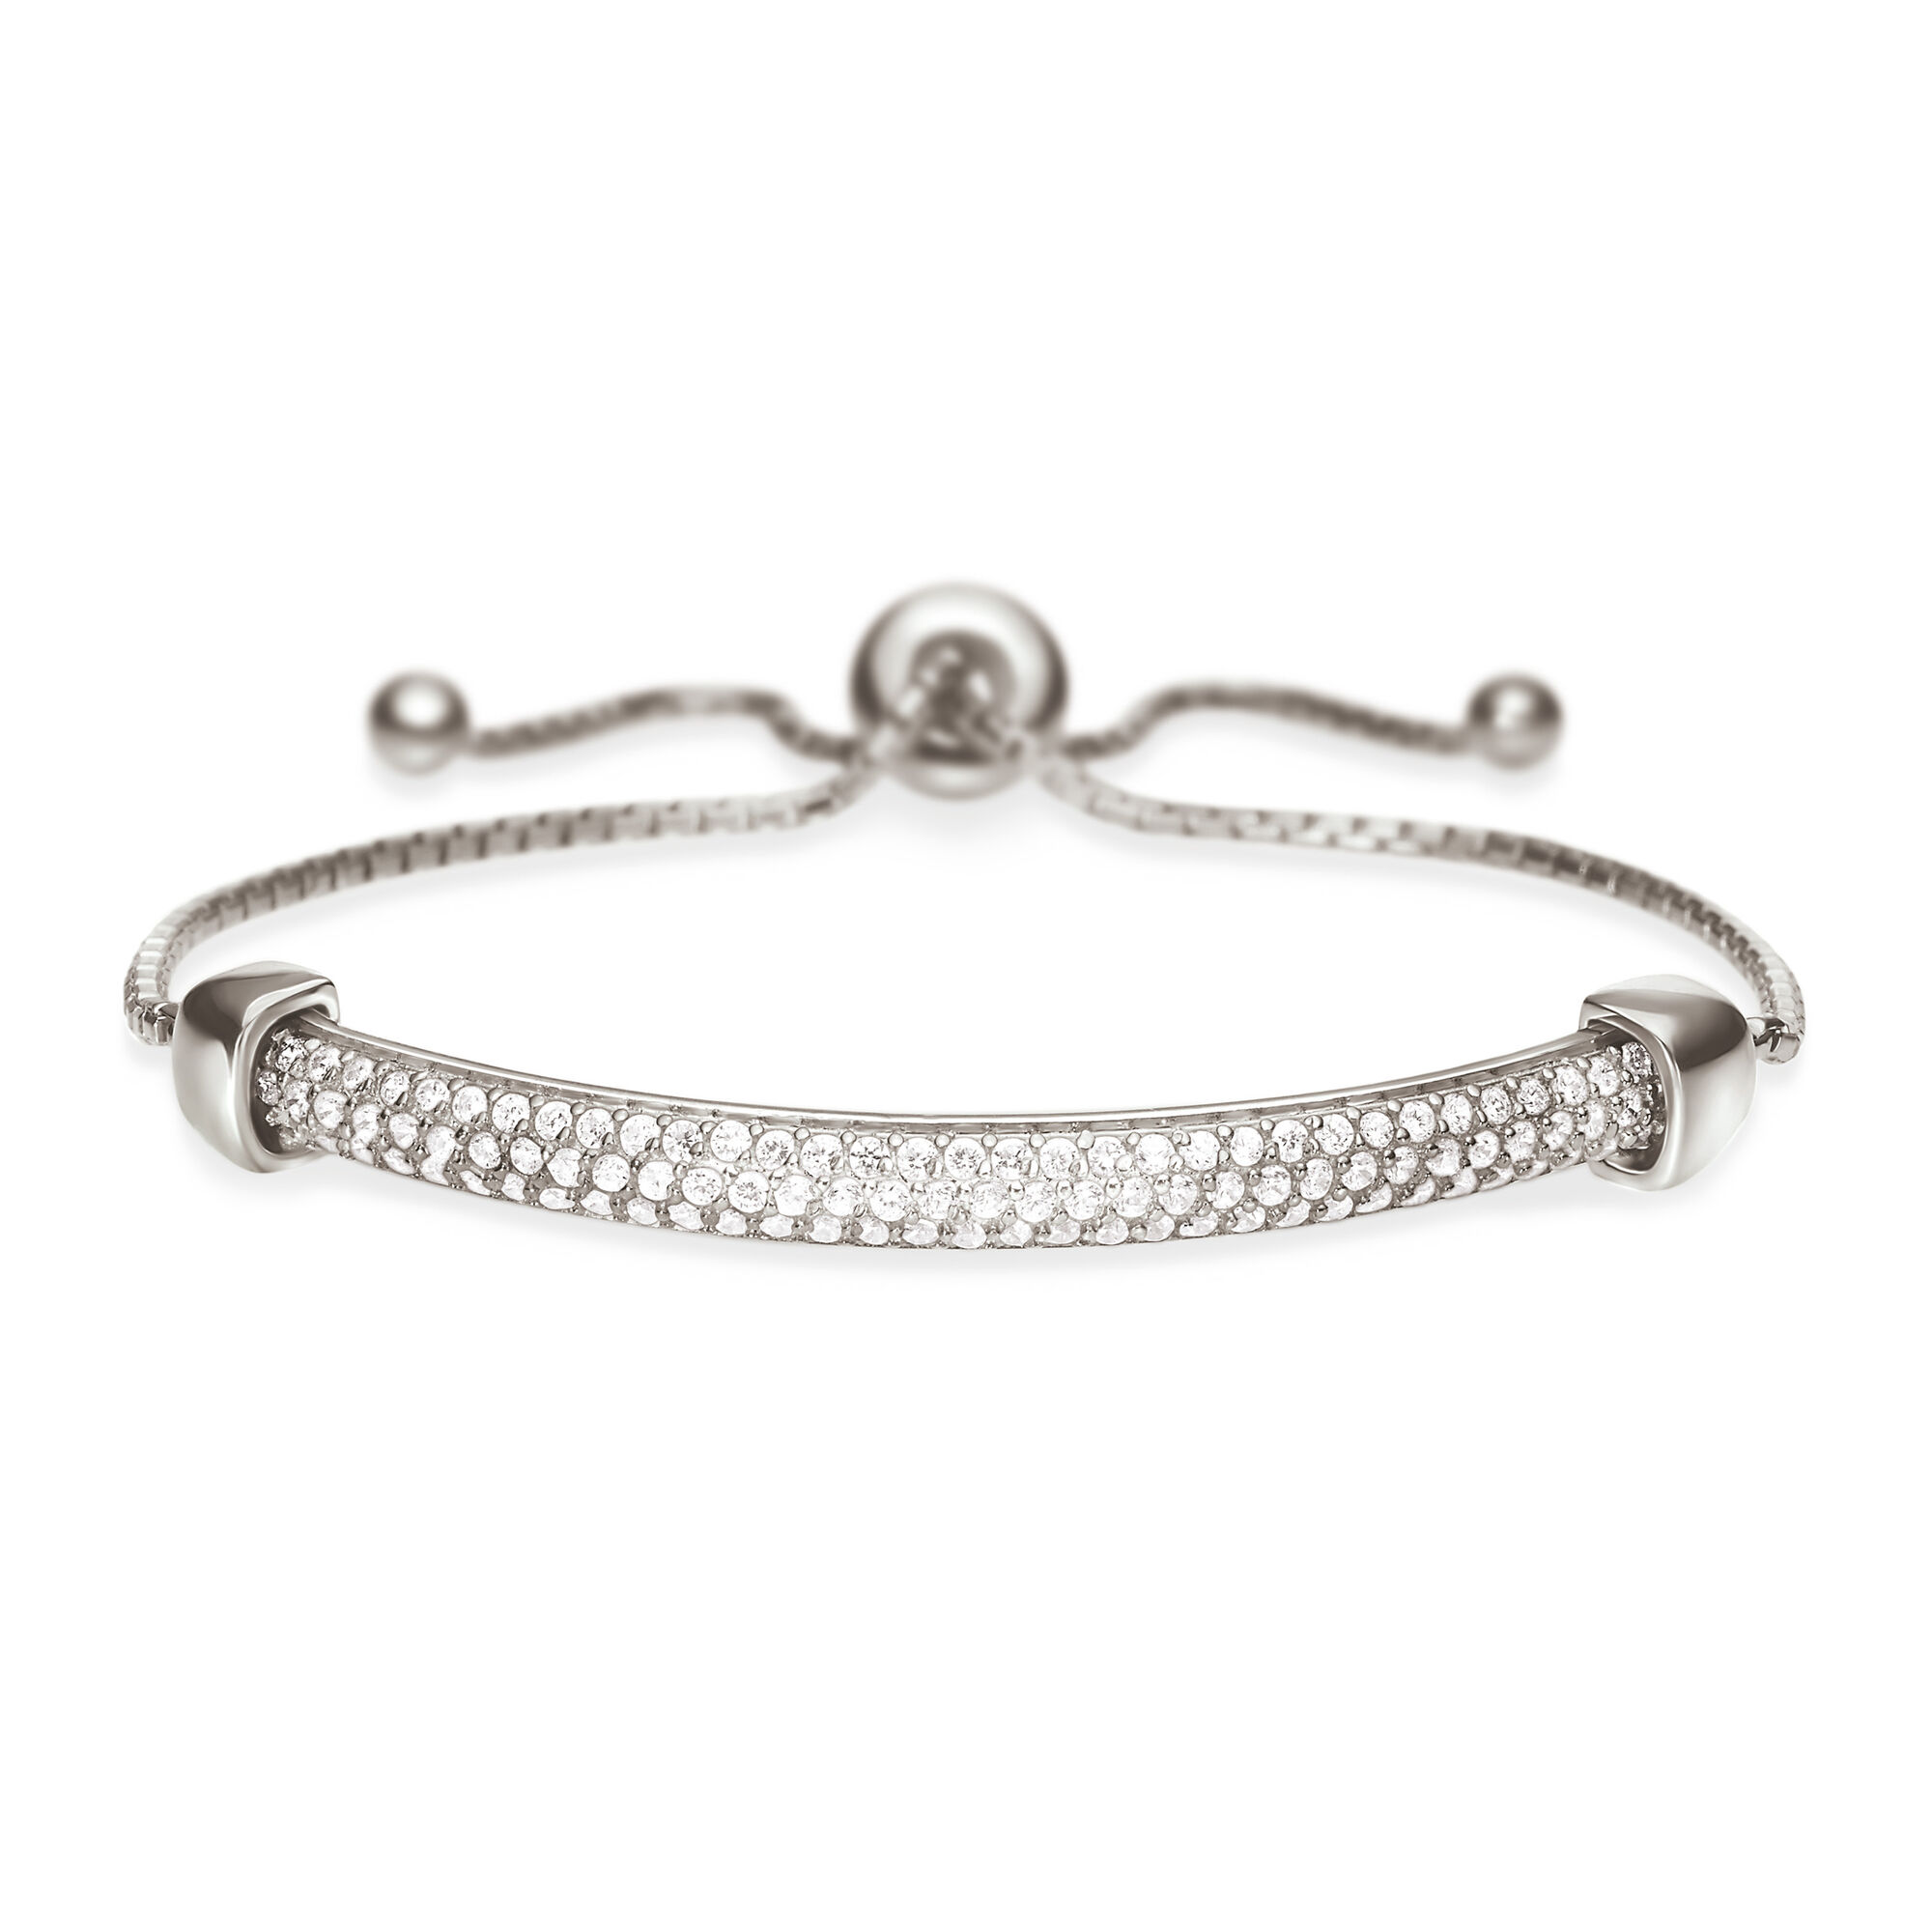 bracelet bangles kurumidori love knot products sterling adjustable silver bangle